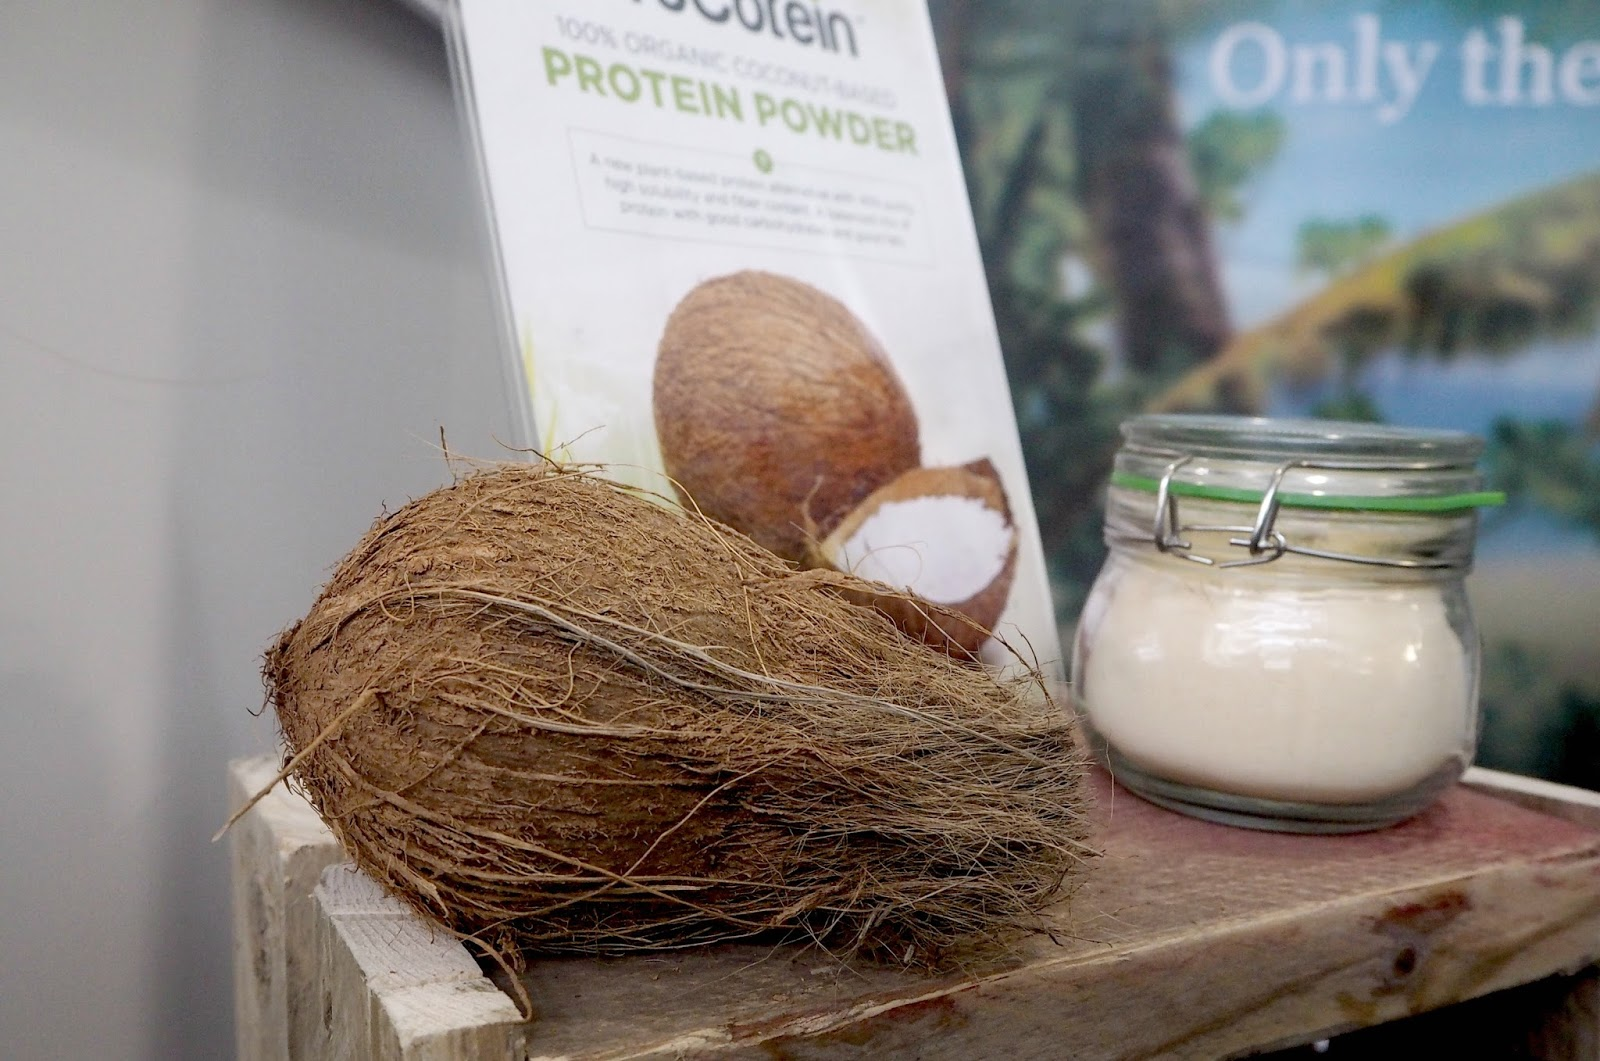 london-health-show-the-coconut-company-vegan-food-copper-garden